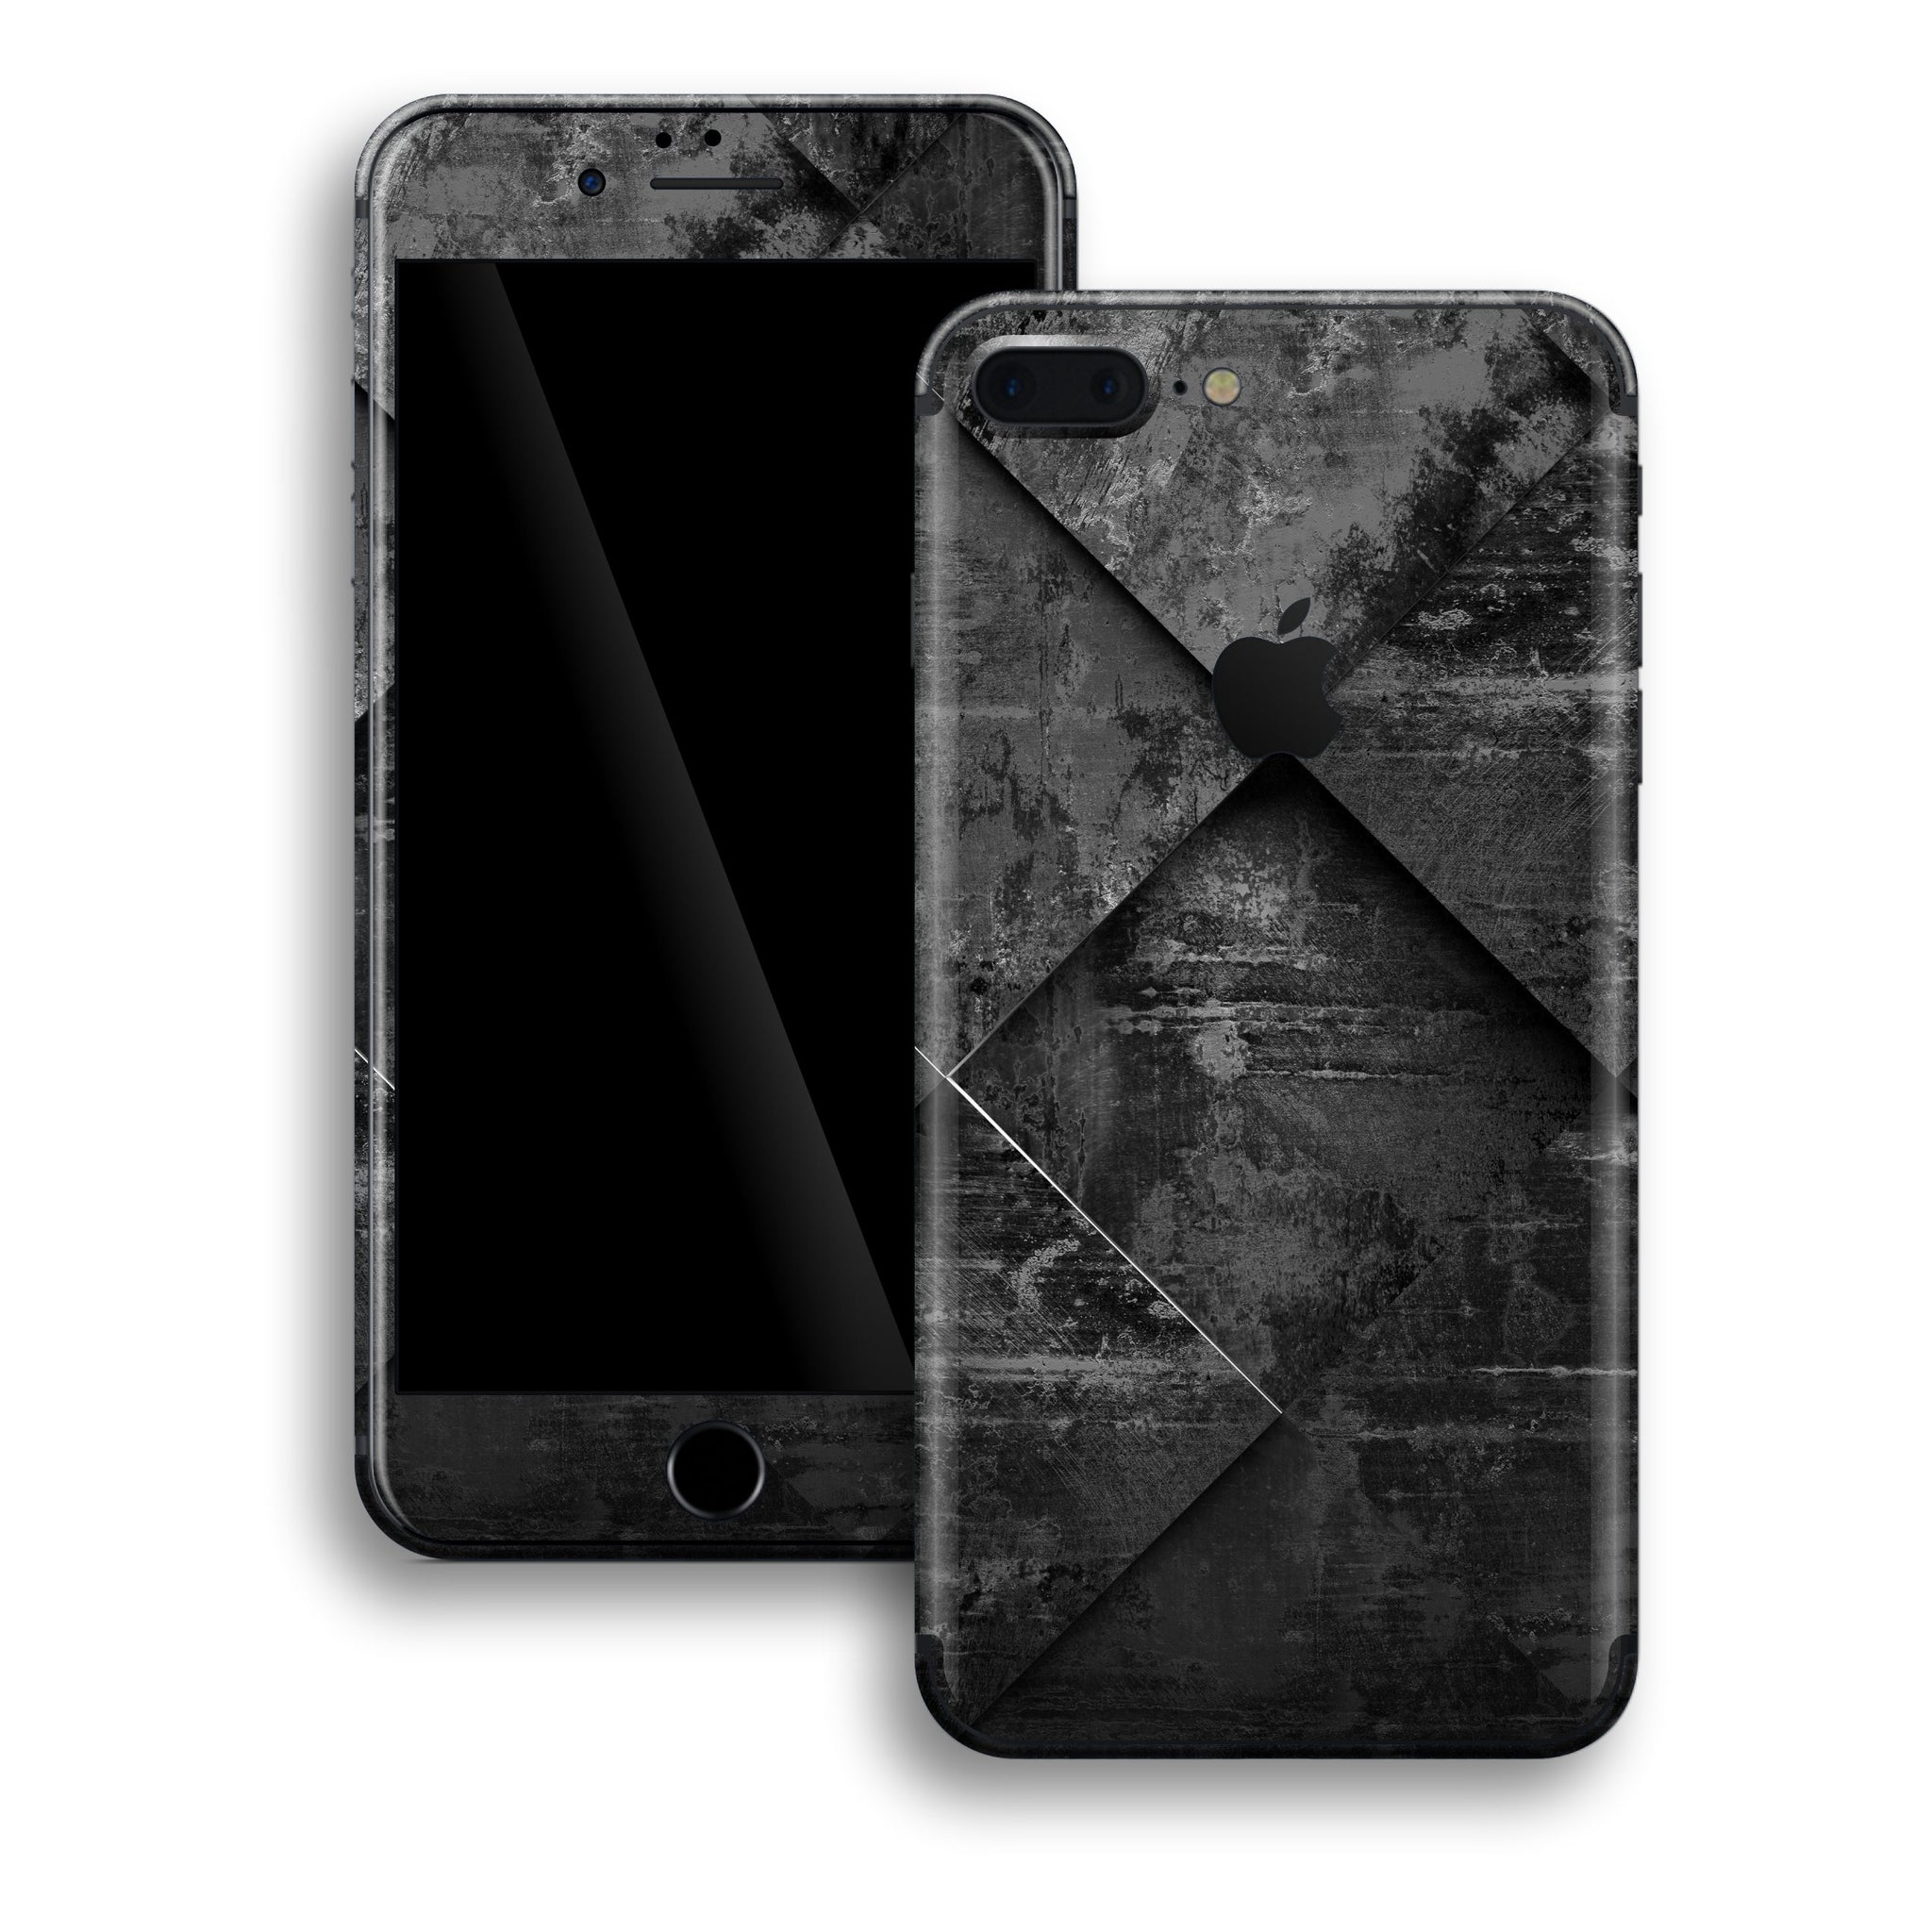 iPhone 8 PLUS Print Custom Signature Black Tiles Skin Wrap Decal by EasySkinz